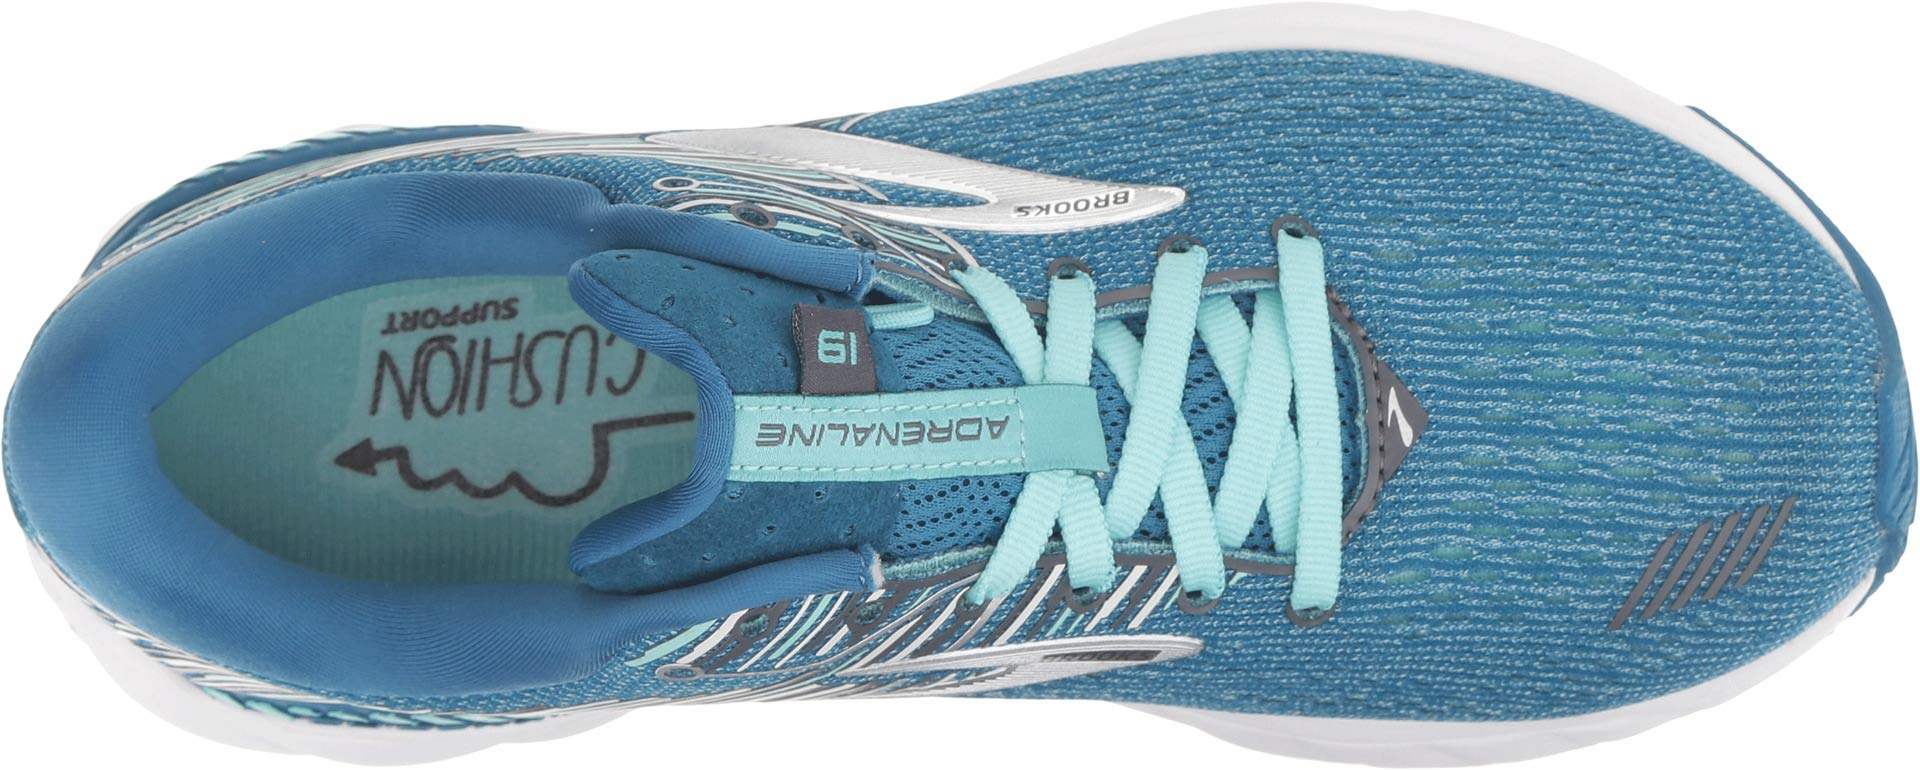 Brooks Women's Adrenaline GTS 19 Blue/Aqua/Ebony 5.5 B US by Brooks (Image #2)